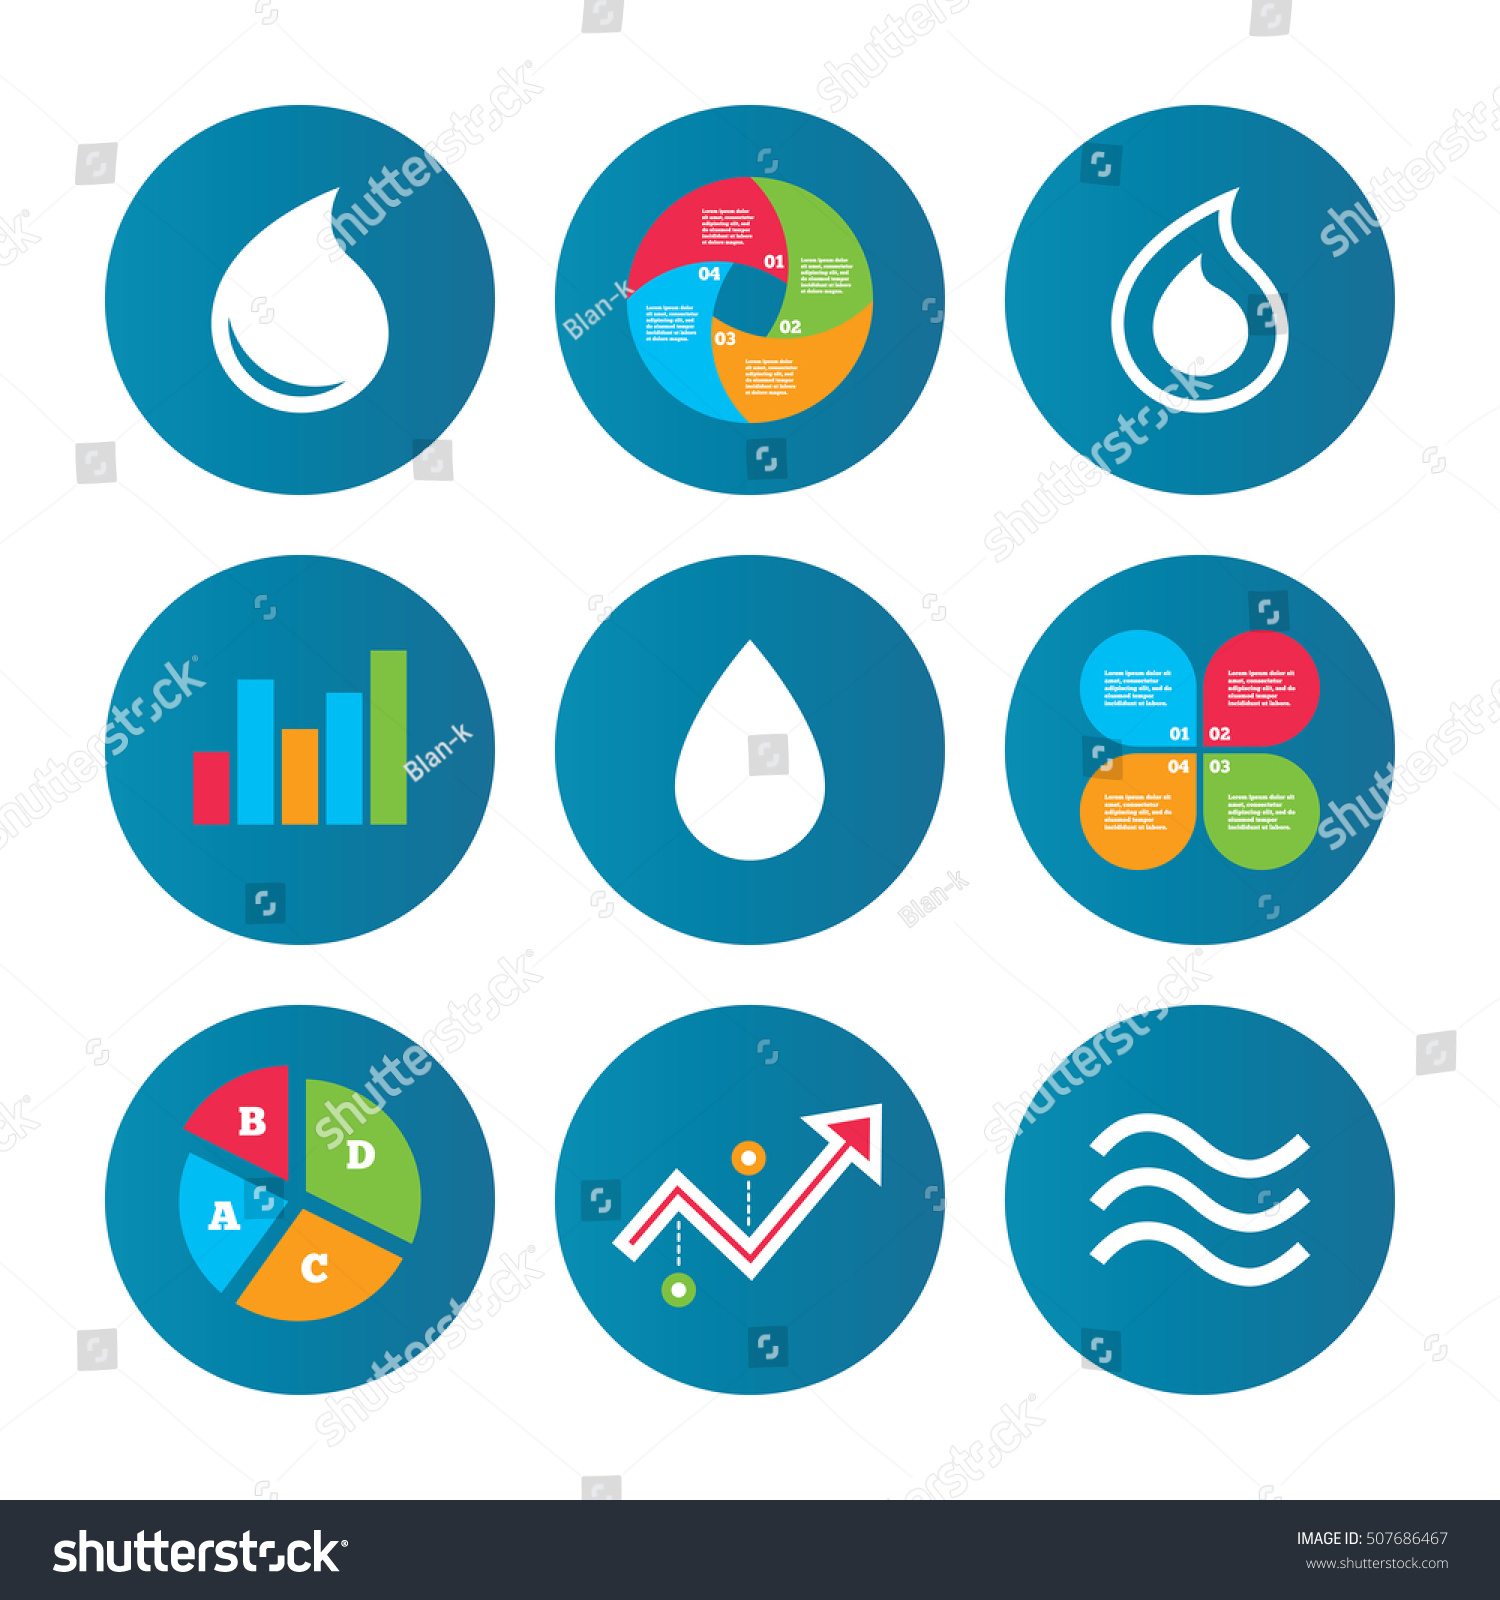 Oil symbol stock choice image symbol and sign ideas water drop icons tear oil symbols stock vector 507686467 tear or oil symbols buycottarizona buycottarizona